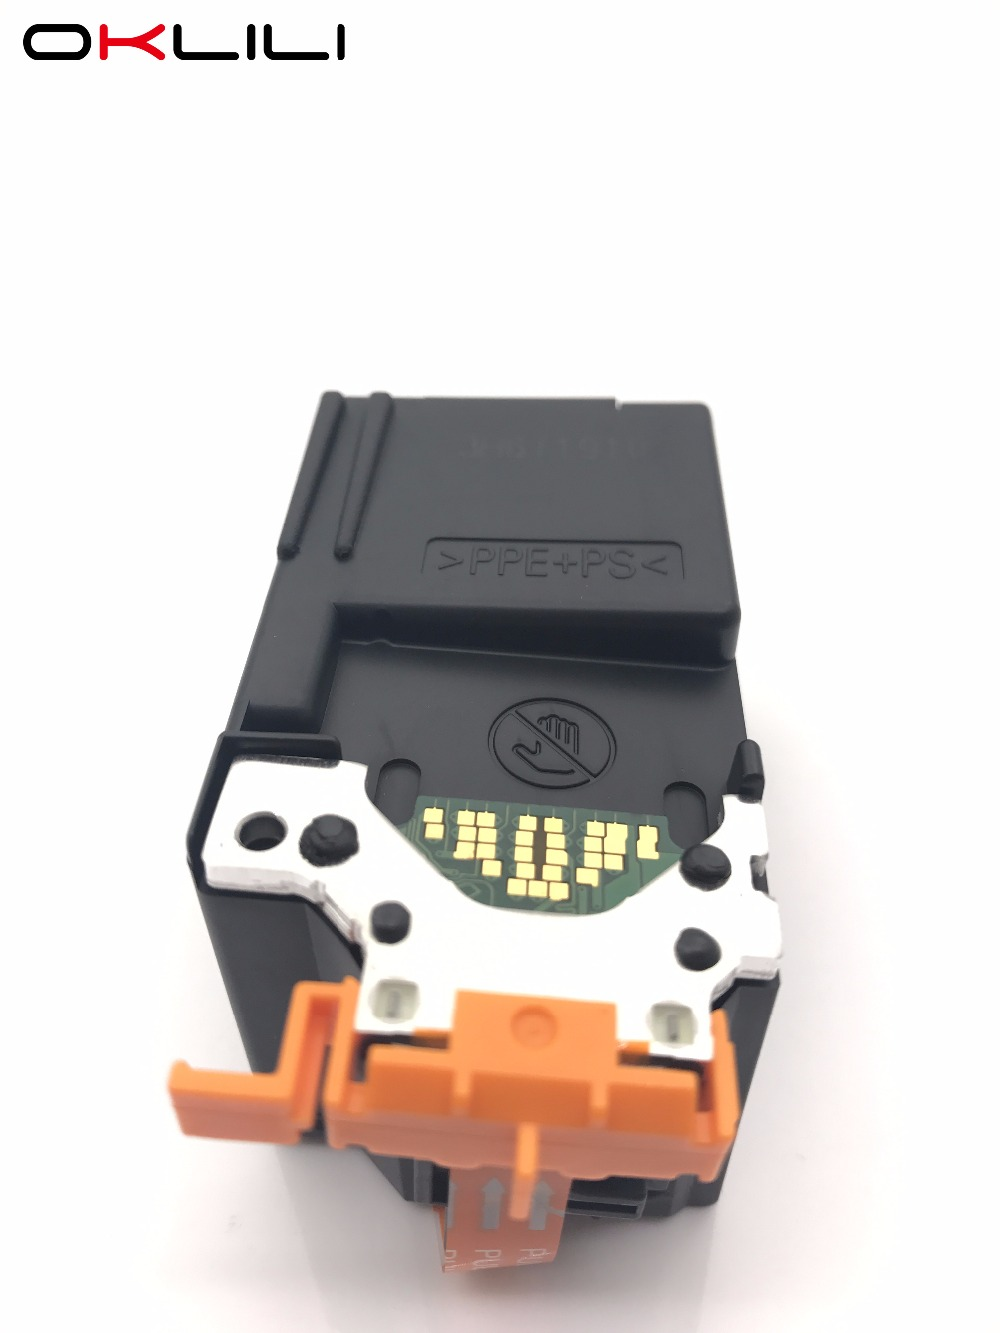 OKLILI ORIGINAL NEW QY6-0038 QY6-0038-000 Printhead Print Head Printer Head for Canon BJ S200 S200x S200SP S200SPx genuine brand new qy6 0070 printhead print head for canon mp510 mp520 mx700 ip3300 ip3500 printer